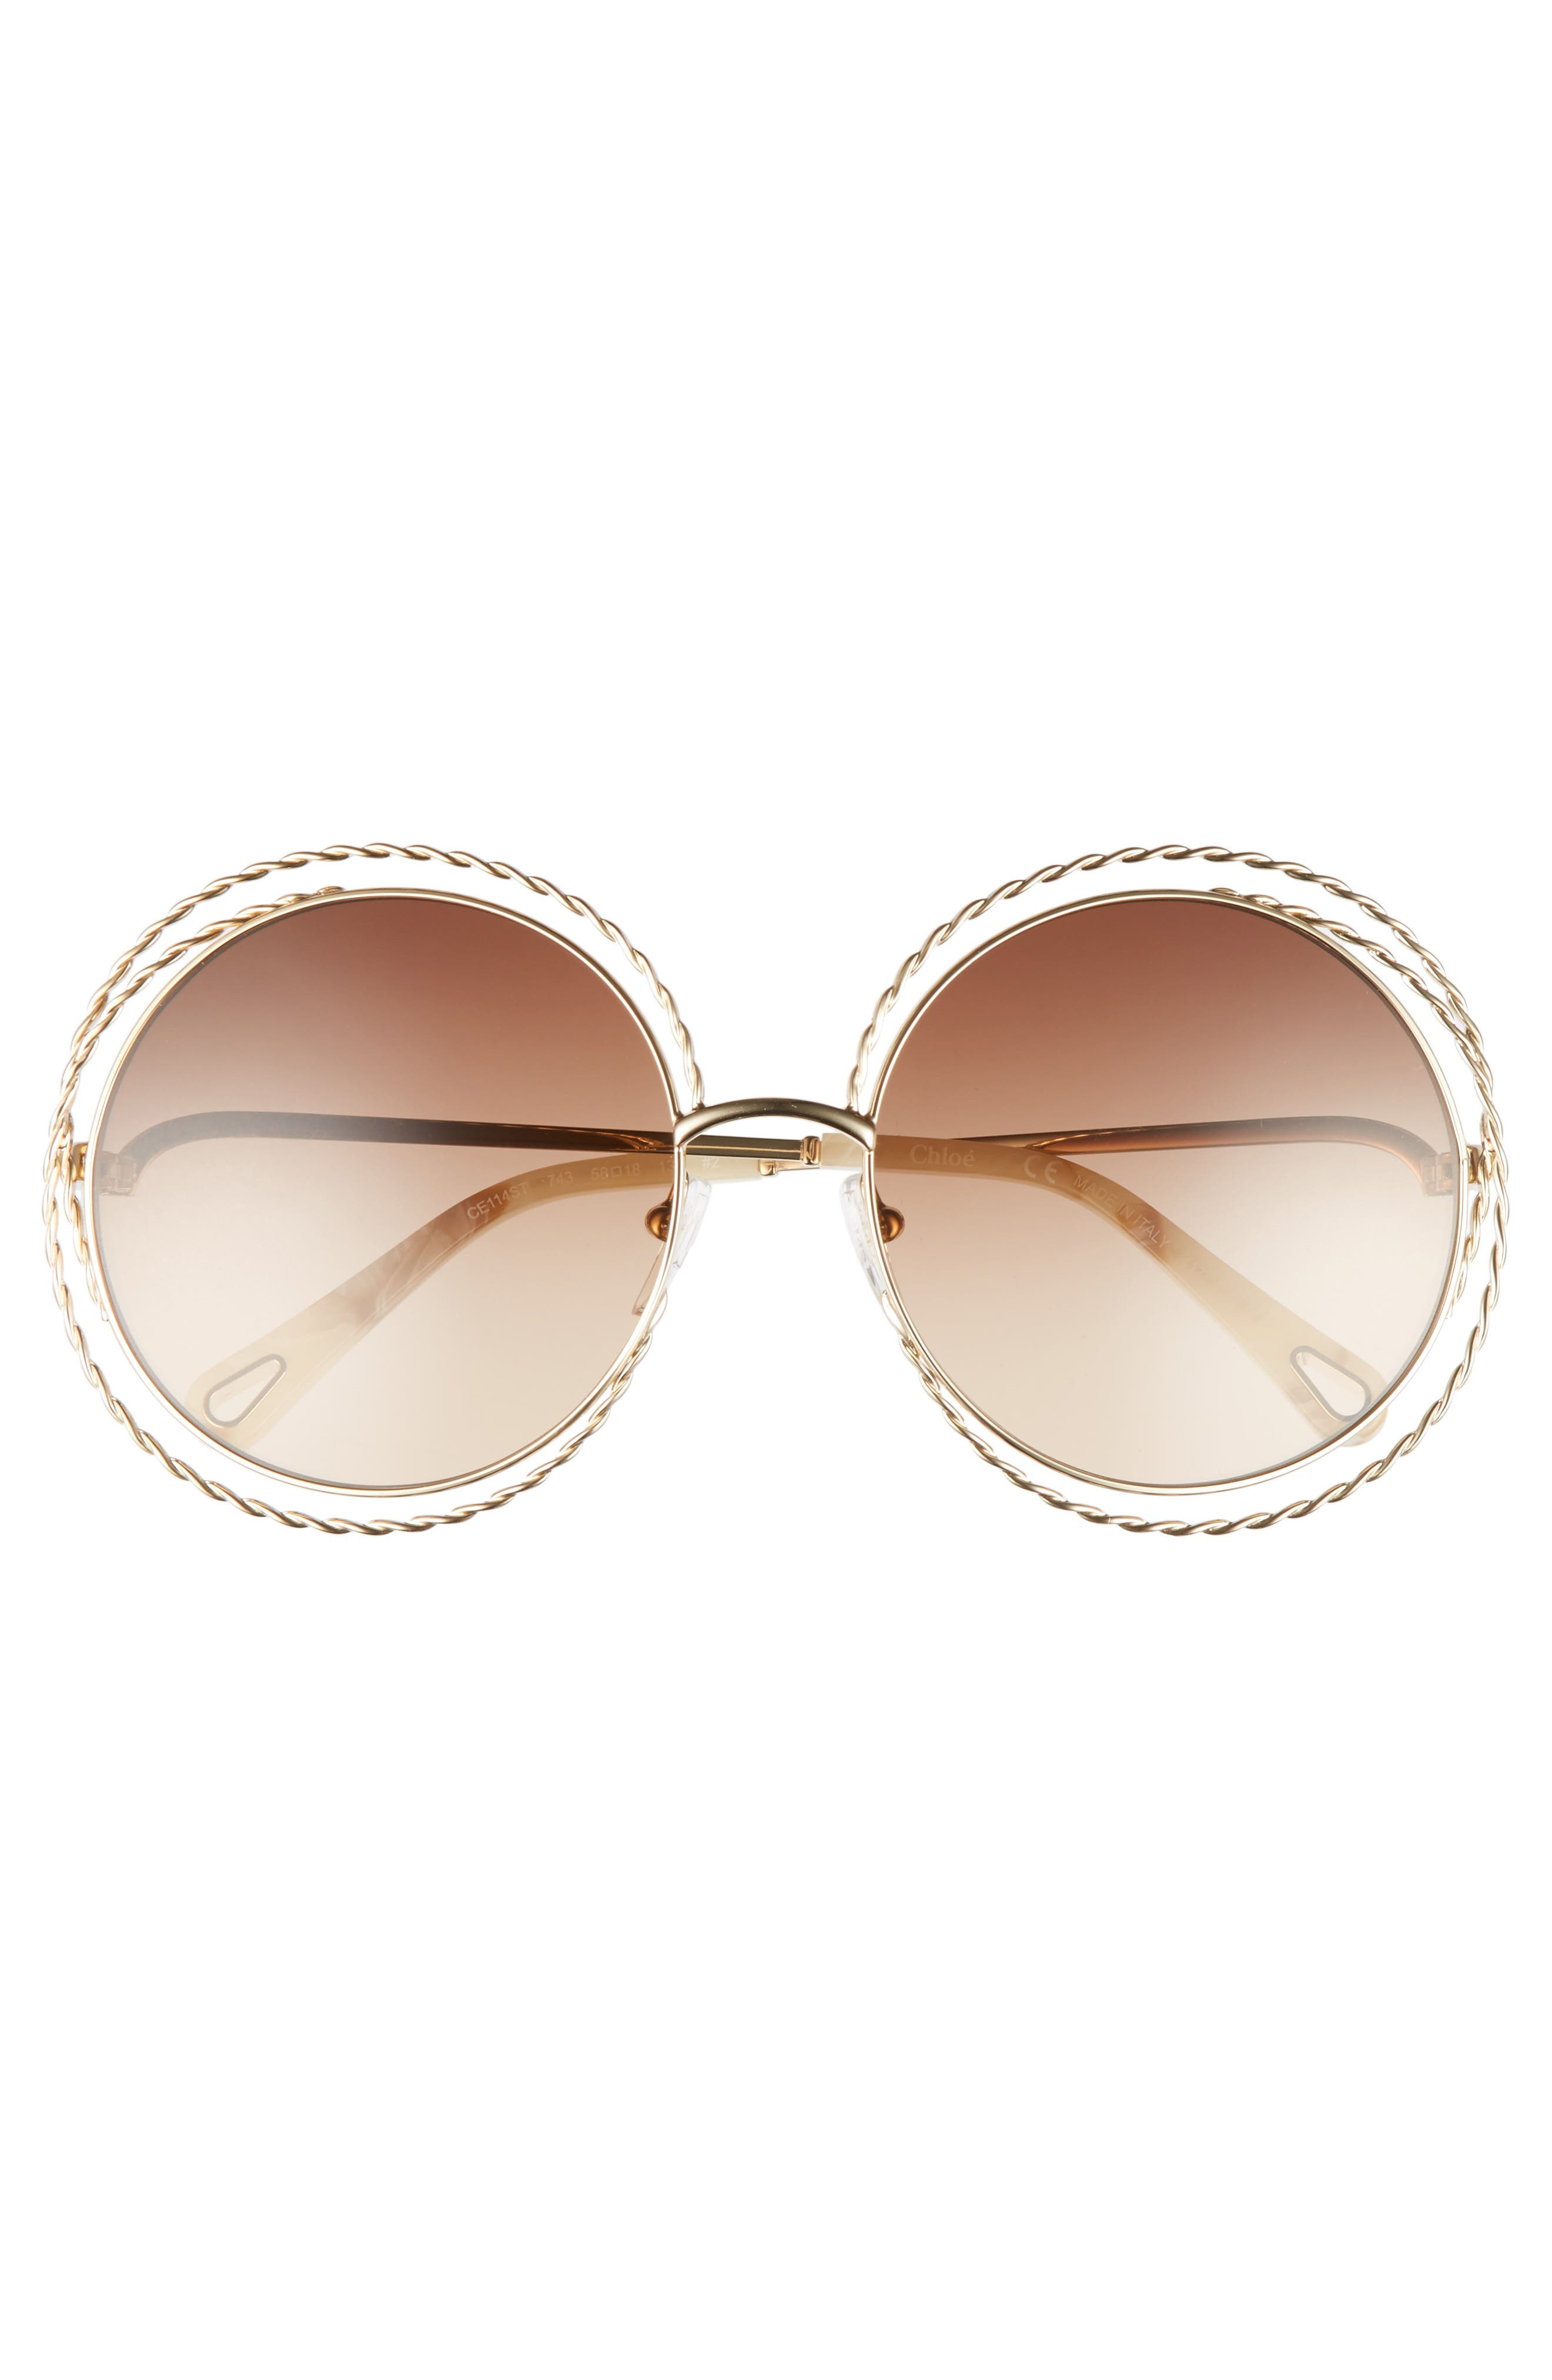 CHLOÉ, Carlina Torsade 58mm Round Sunglasses, Alternate thumbnail 3, color, GOLD/ BROWN